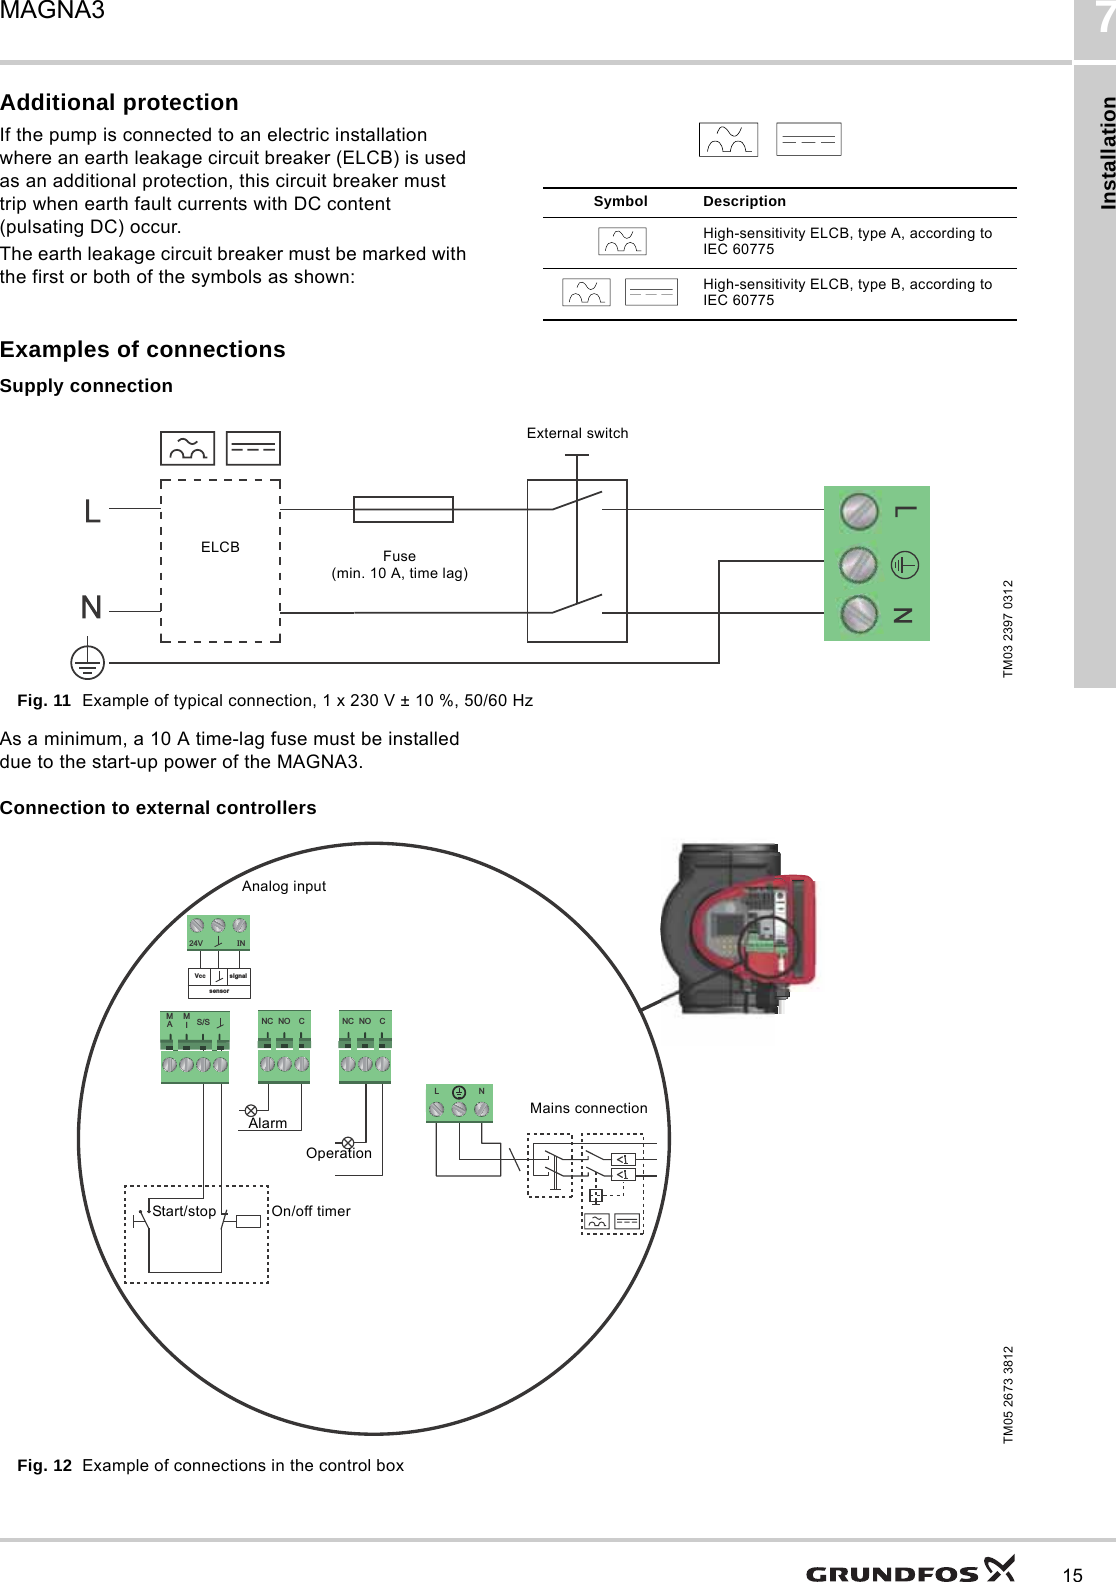 Z 5500 Circuit Diagram Detailed Schematics Wiring Schematic Symbols In Addition On Logitech And Of Cycloconverter